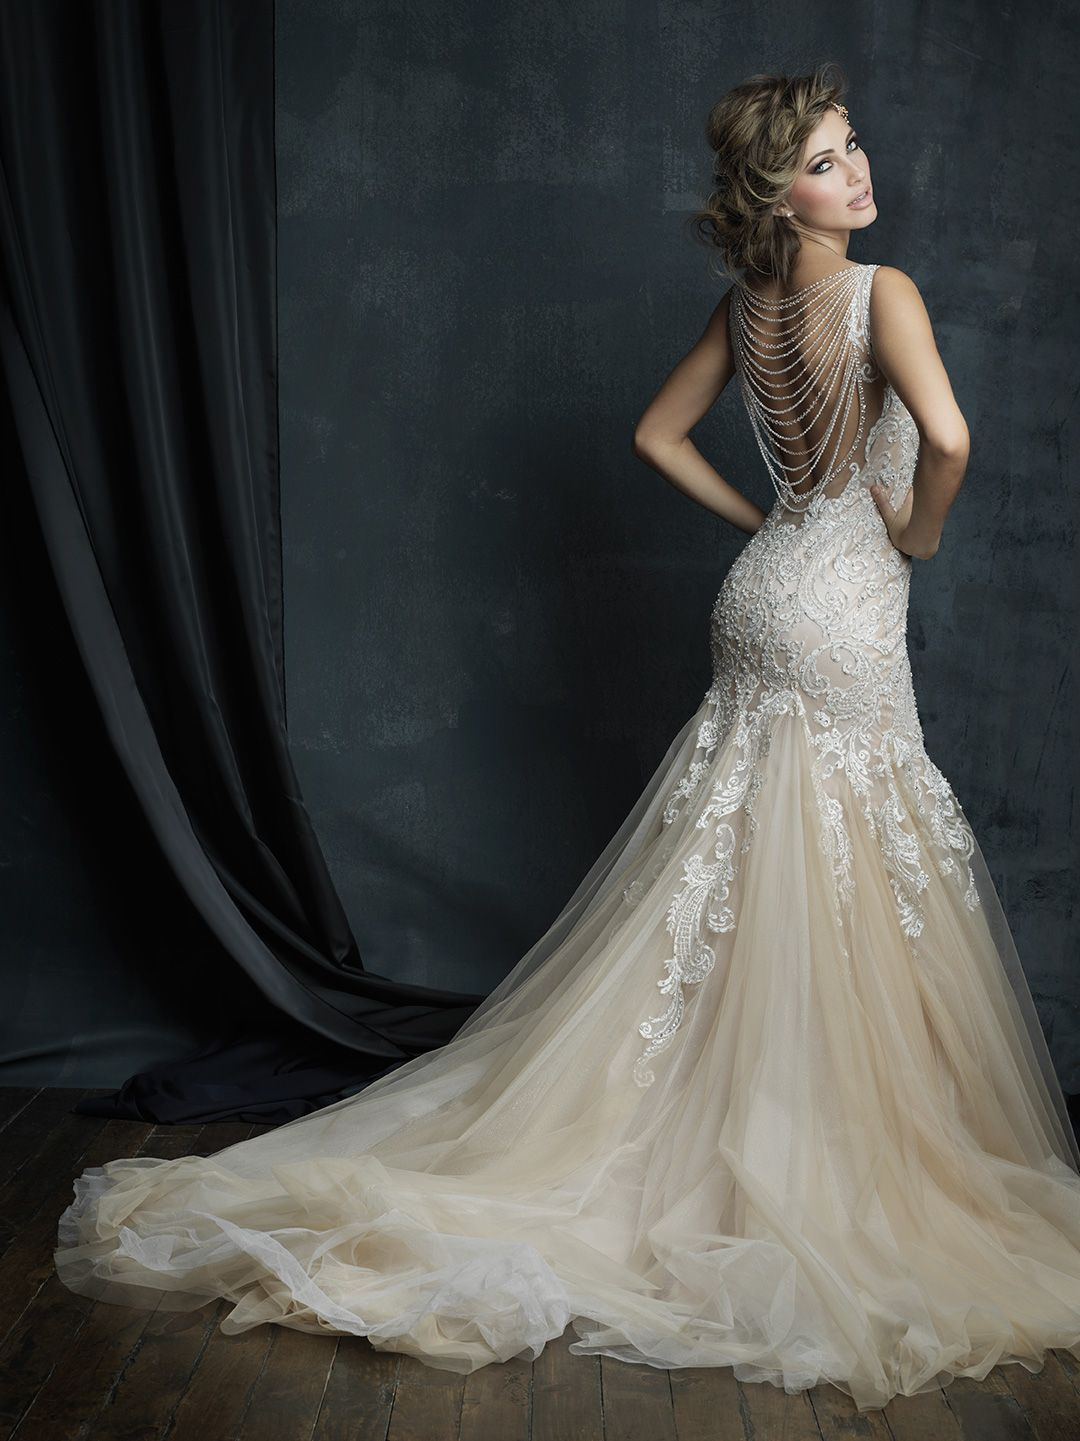 Fitted Wedding Dress From Fantasy Bridal Fitted Mermaid Lace Low Back Beaded Dangles Allure Allure Wedding Dresses Wedding Dress Couture Wedding Dresses